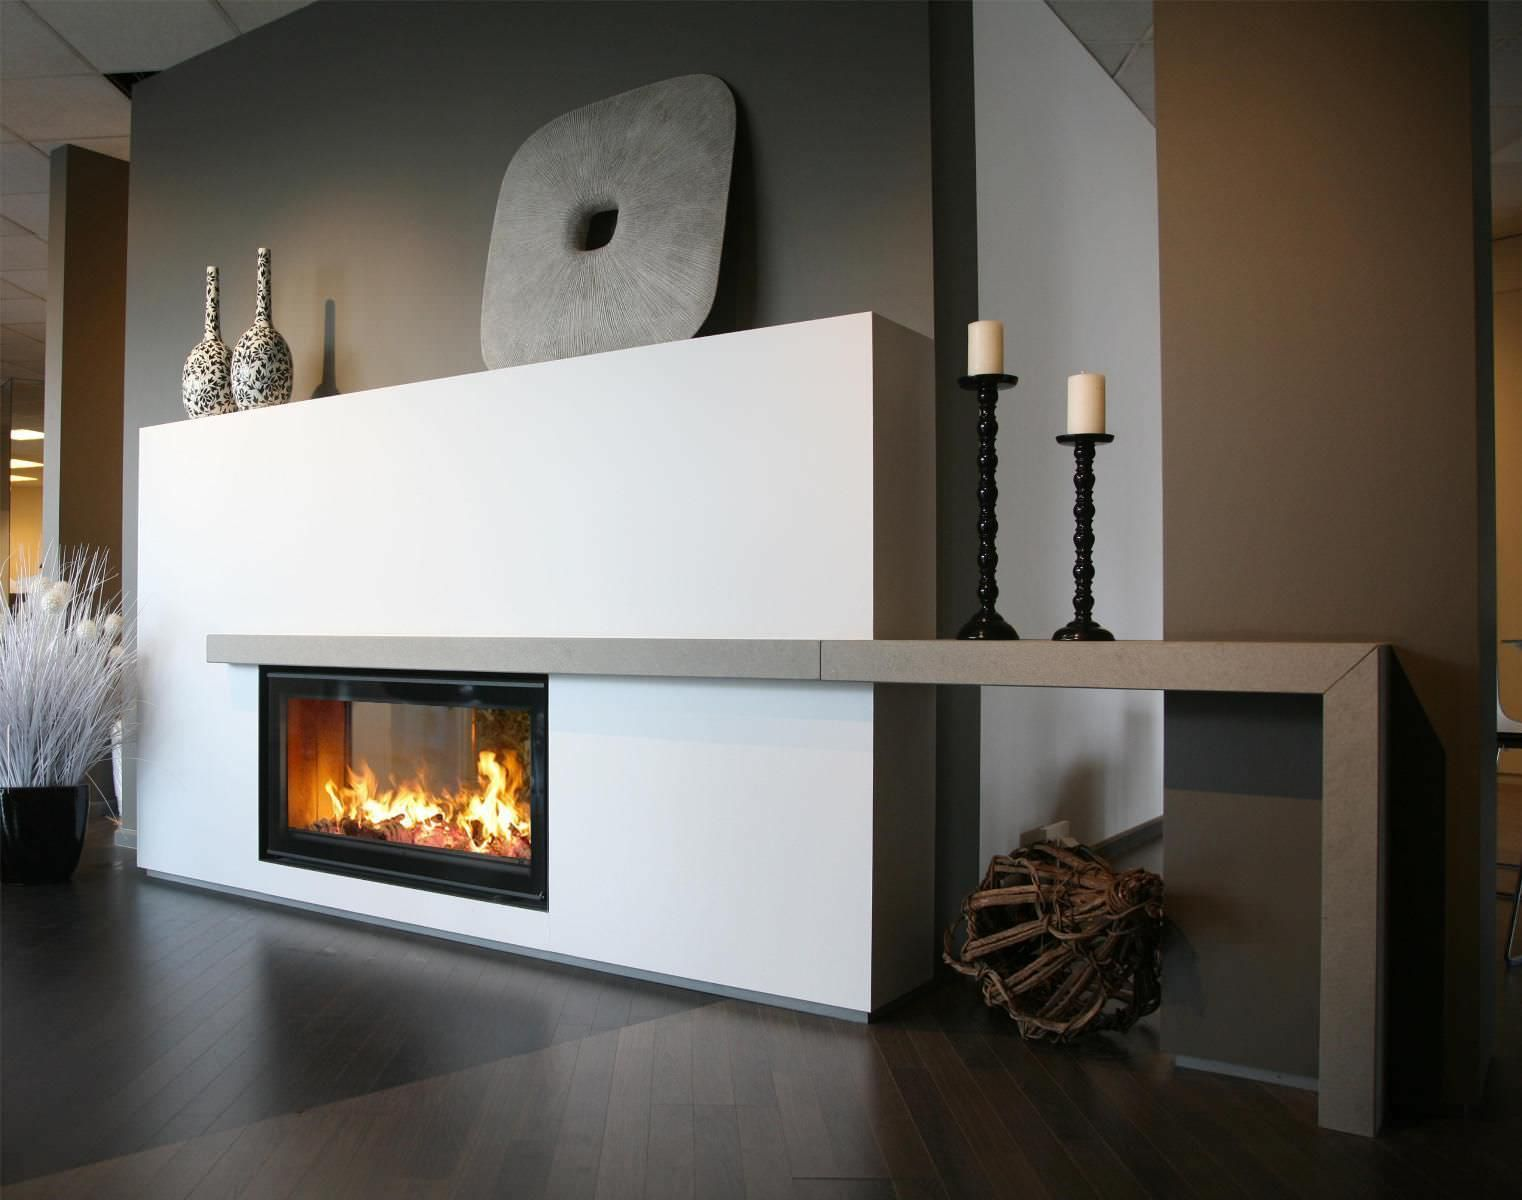 Plain White Double Sided Gas Fireplace Mantel Design With